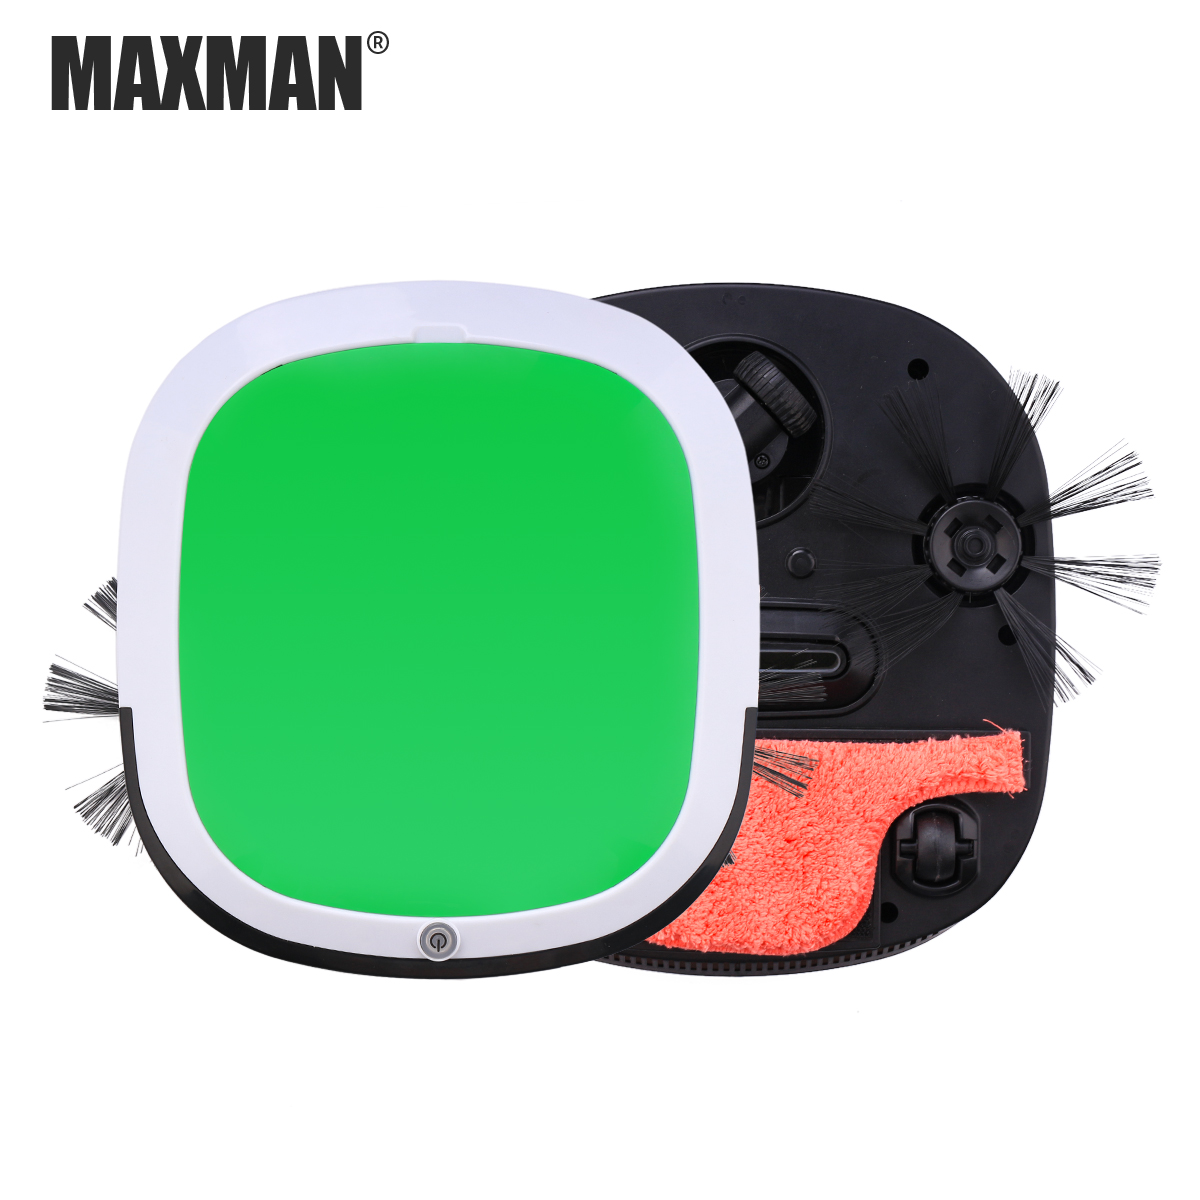 MAXMAN Robot Vacuum Cleaner 300Pa Suction Cyclic Charging for Home Sweeping Dust Mopping for Wood Floor Robot Vacuum smart sweeping robot vacuum cleaner for home ultrathin grazing mopping integrated machine free shipping